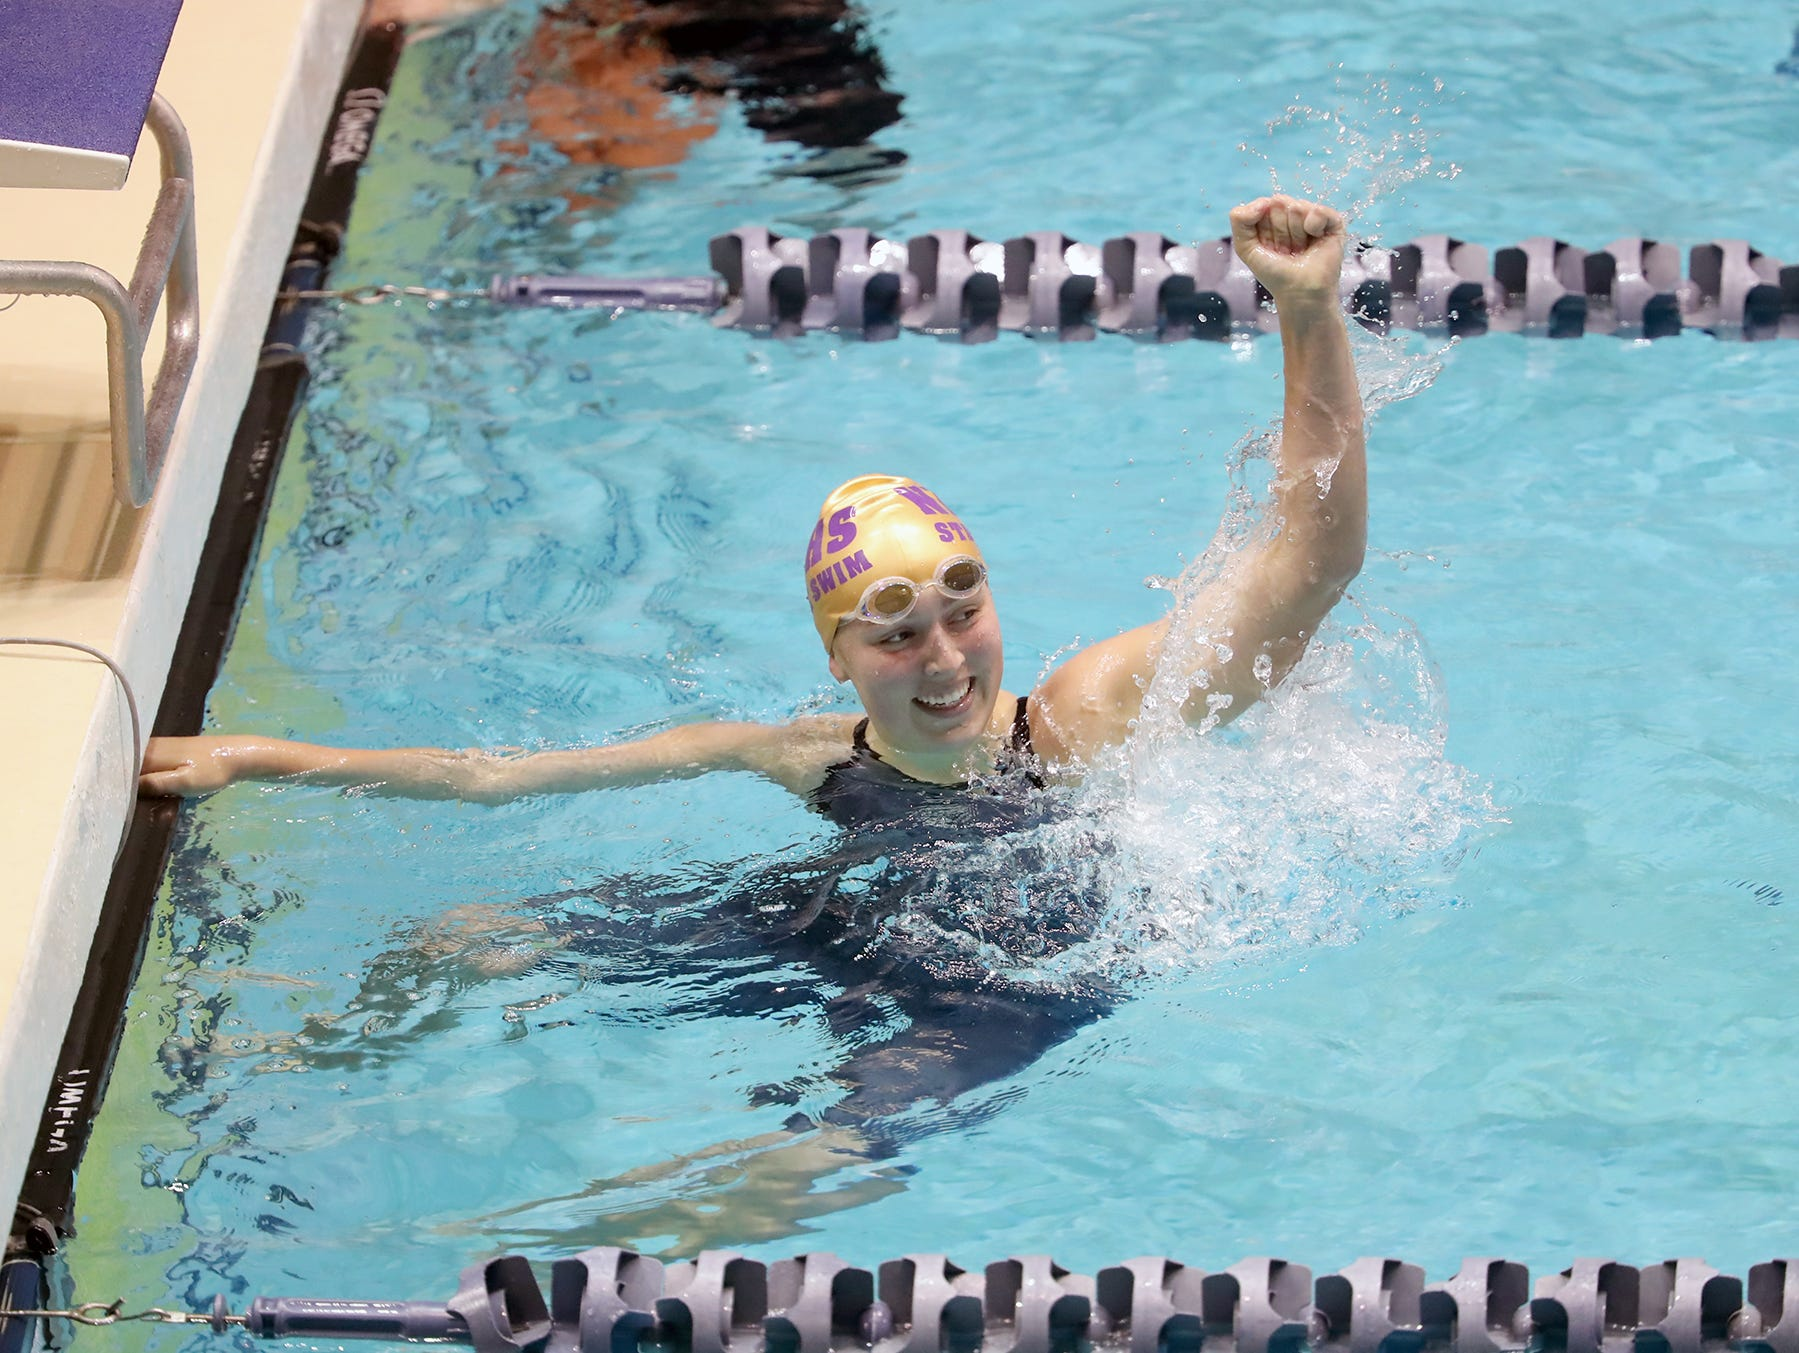 The North Kitsap Girls swim team won the team title at the 2018 2A Girls State Swim & Diving Championships on Saturday, November, 10, 2018 at the King County Aquatics Center, in Federal Way. North swimmer Brianna Hoffman, celebrates after winning the 200 yard freestyle event.